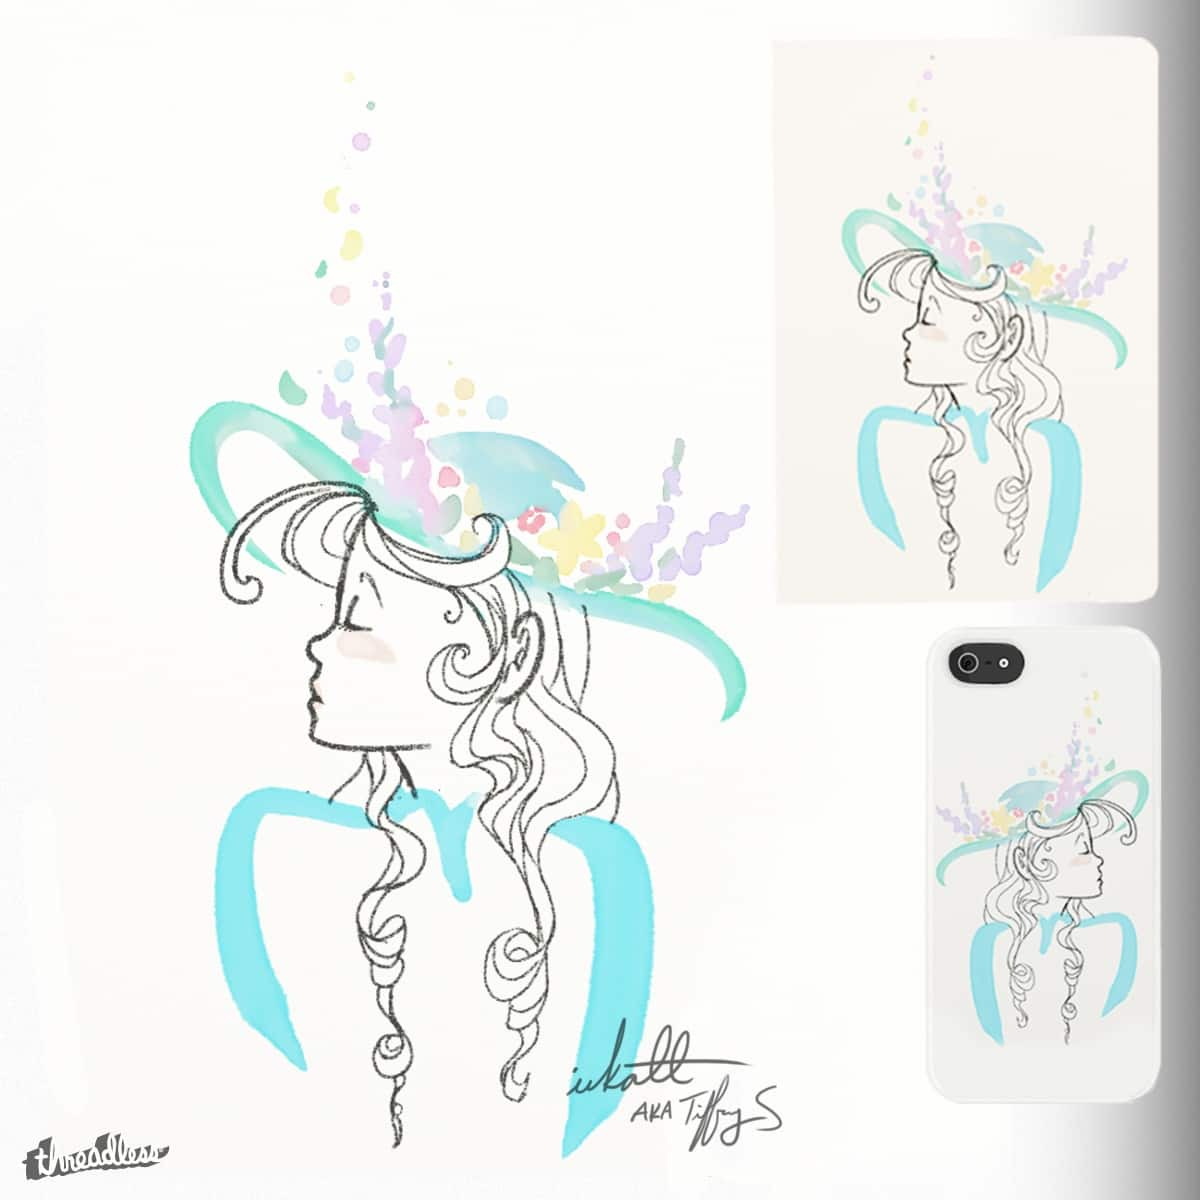 sPRiNG by inkatt on Threadless